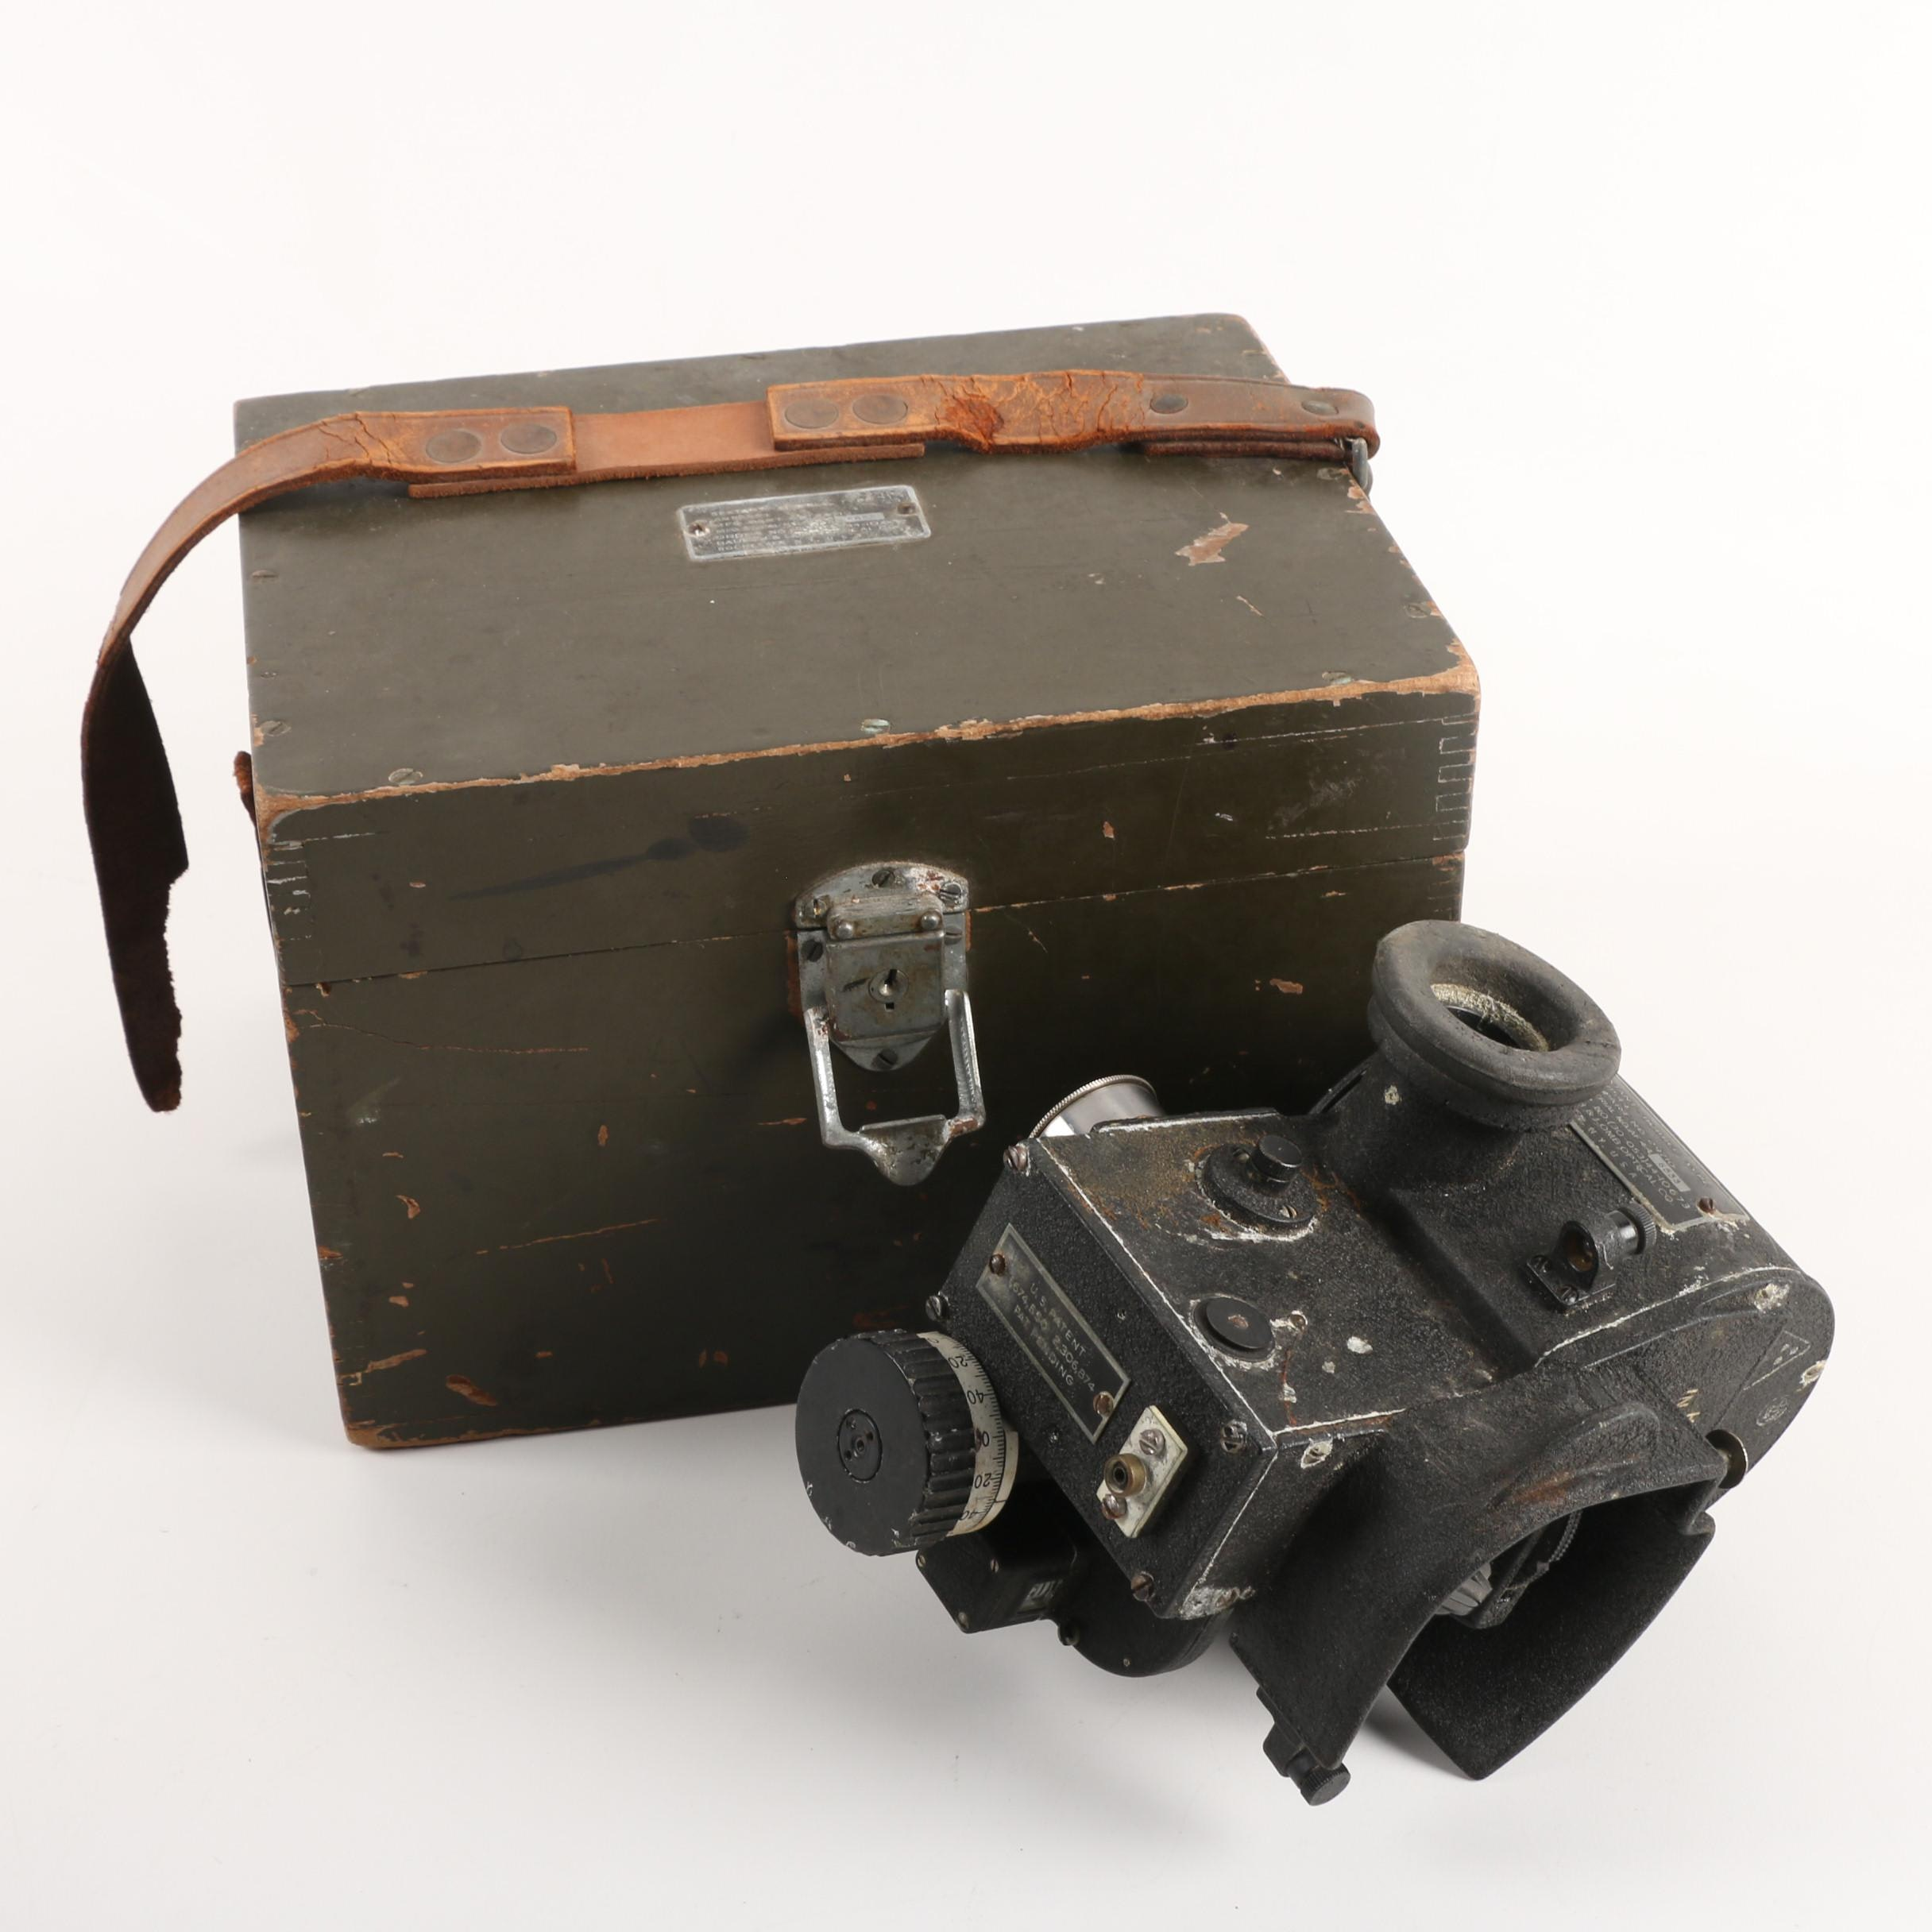 U.S. Navy Navigation Sextant Bubble Type AN 5854-1 with Case